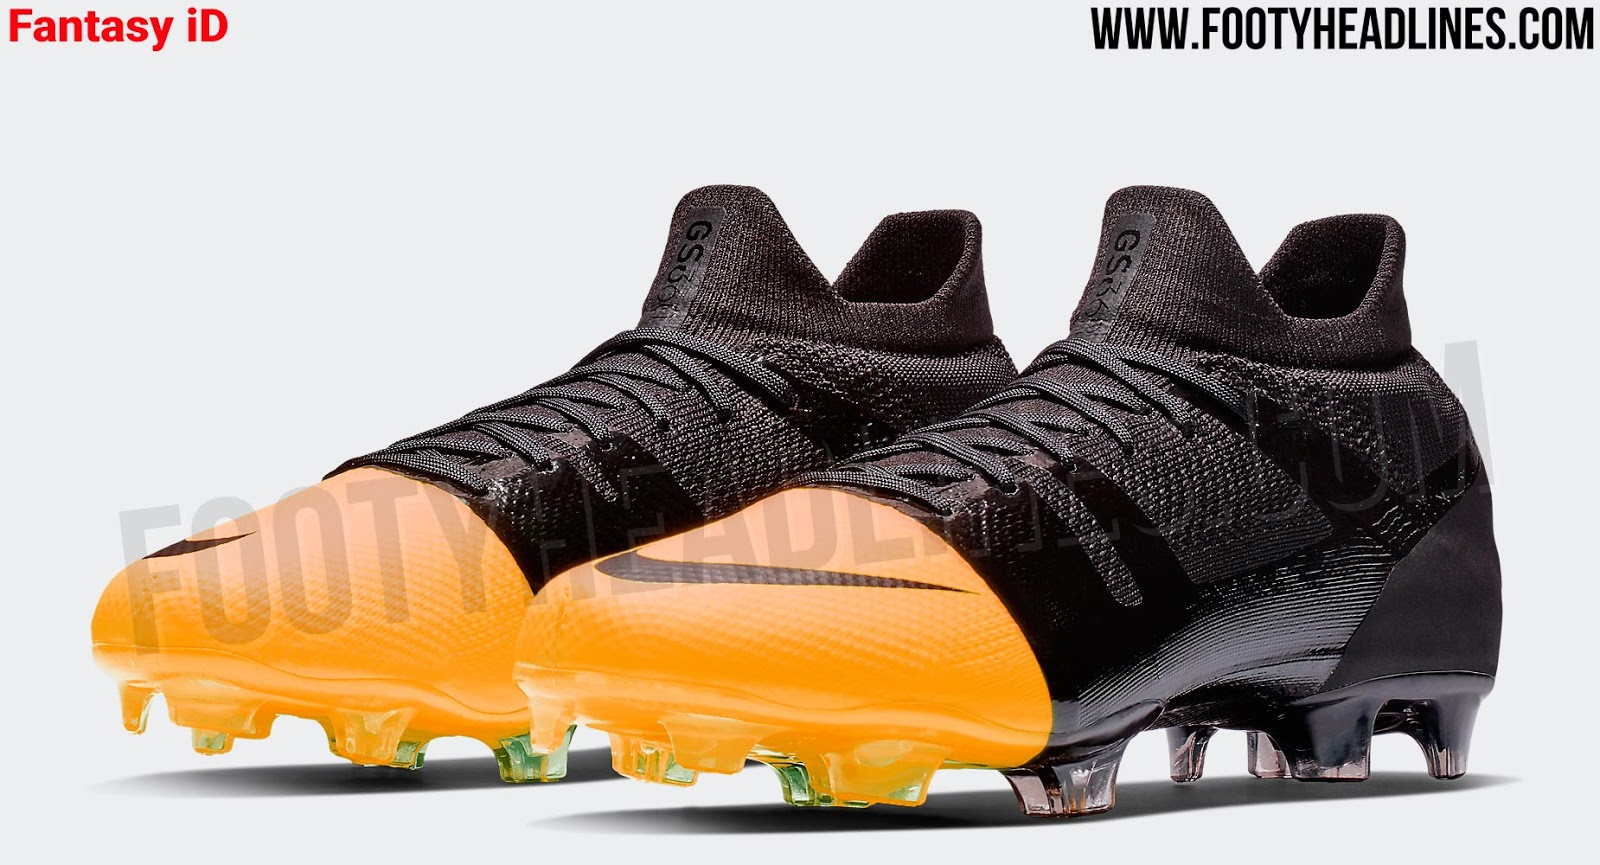 f05600bbf Exclusive  Nike to Release Nike Mercurial GS360 iD Boots - Footy ...